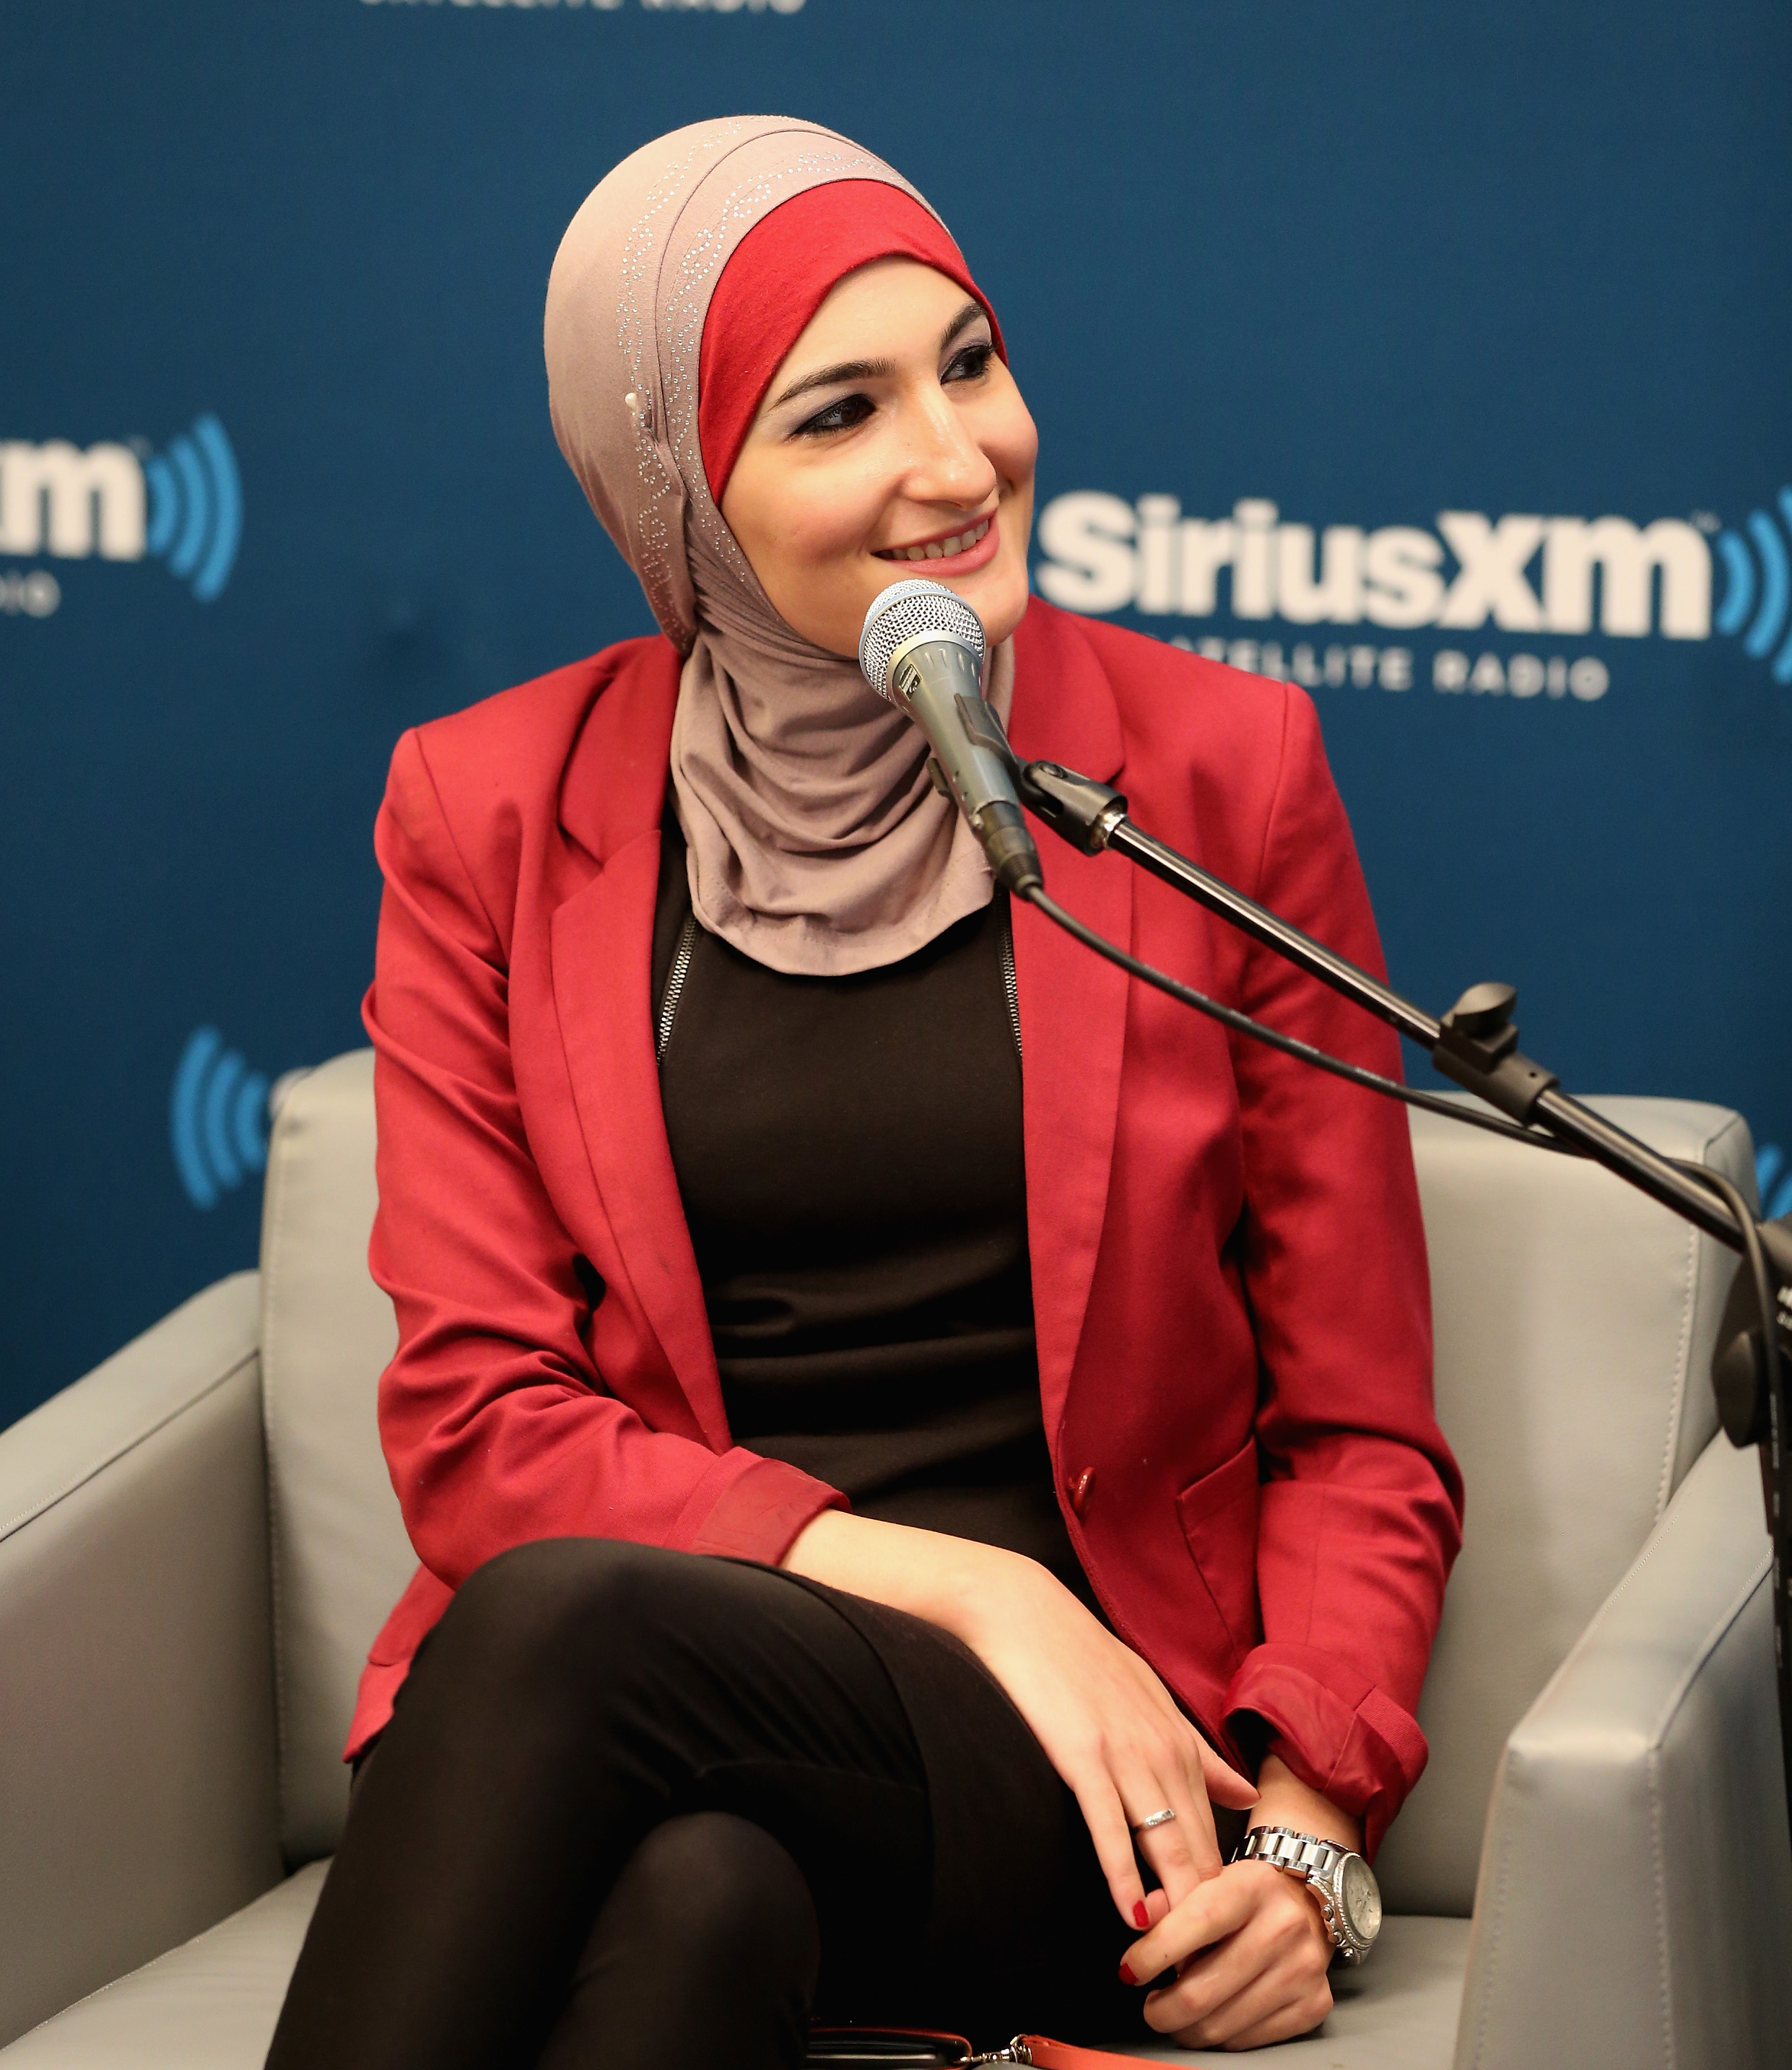 Linda Sarsour wearing a red jacket and head scarf during a SiriusXM event